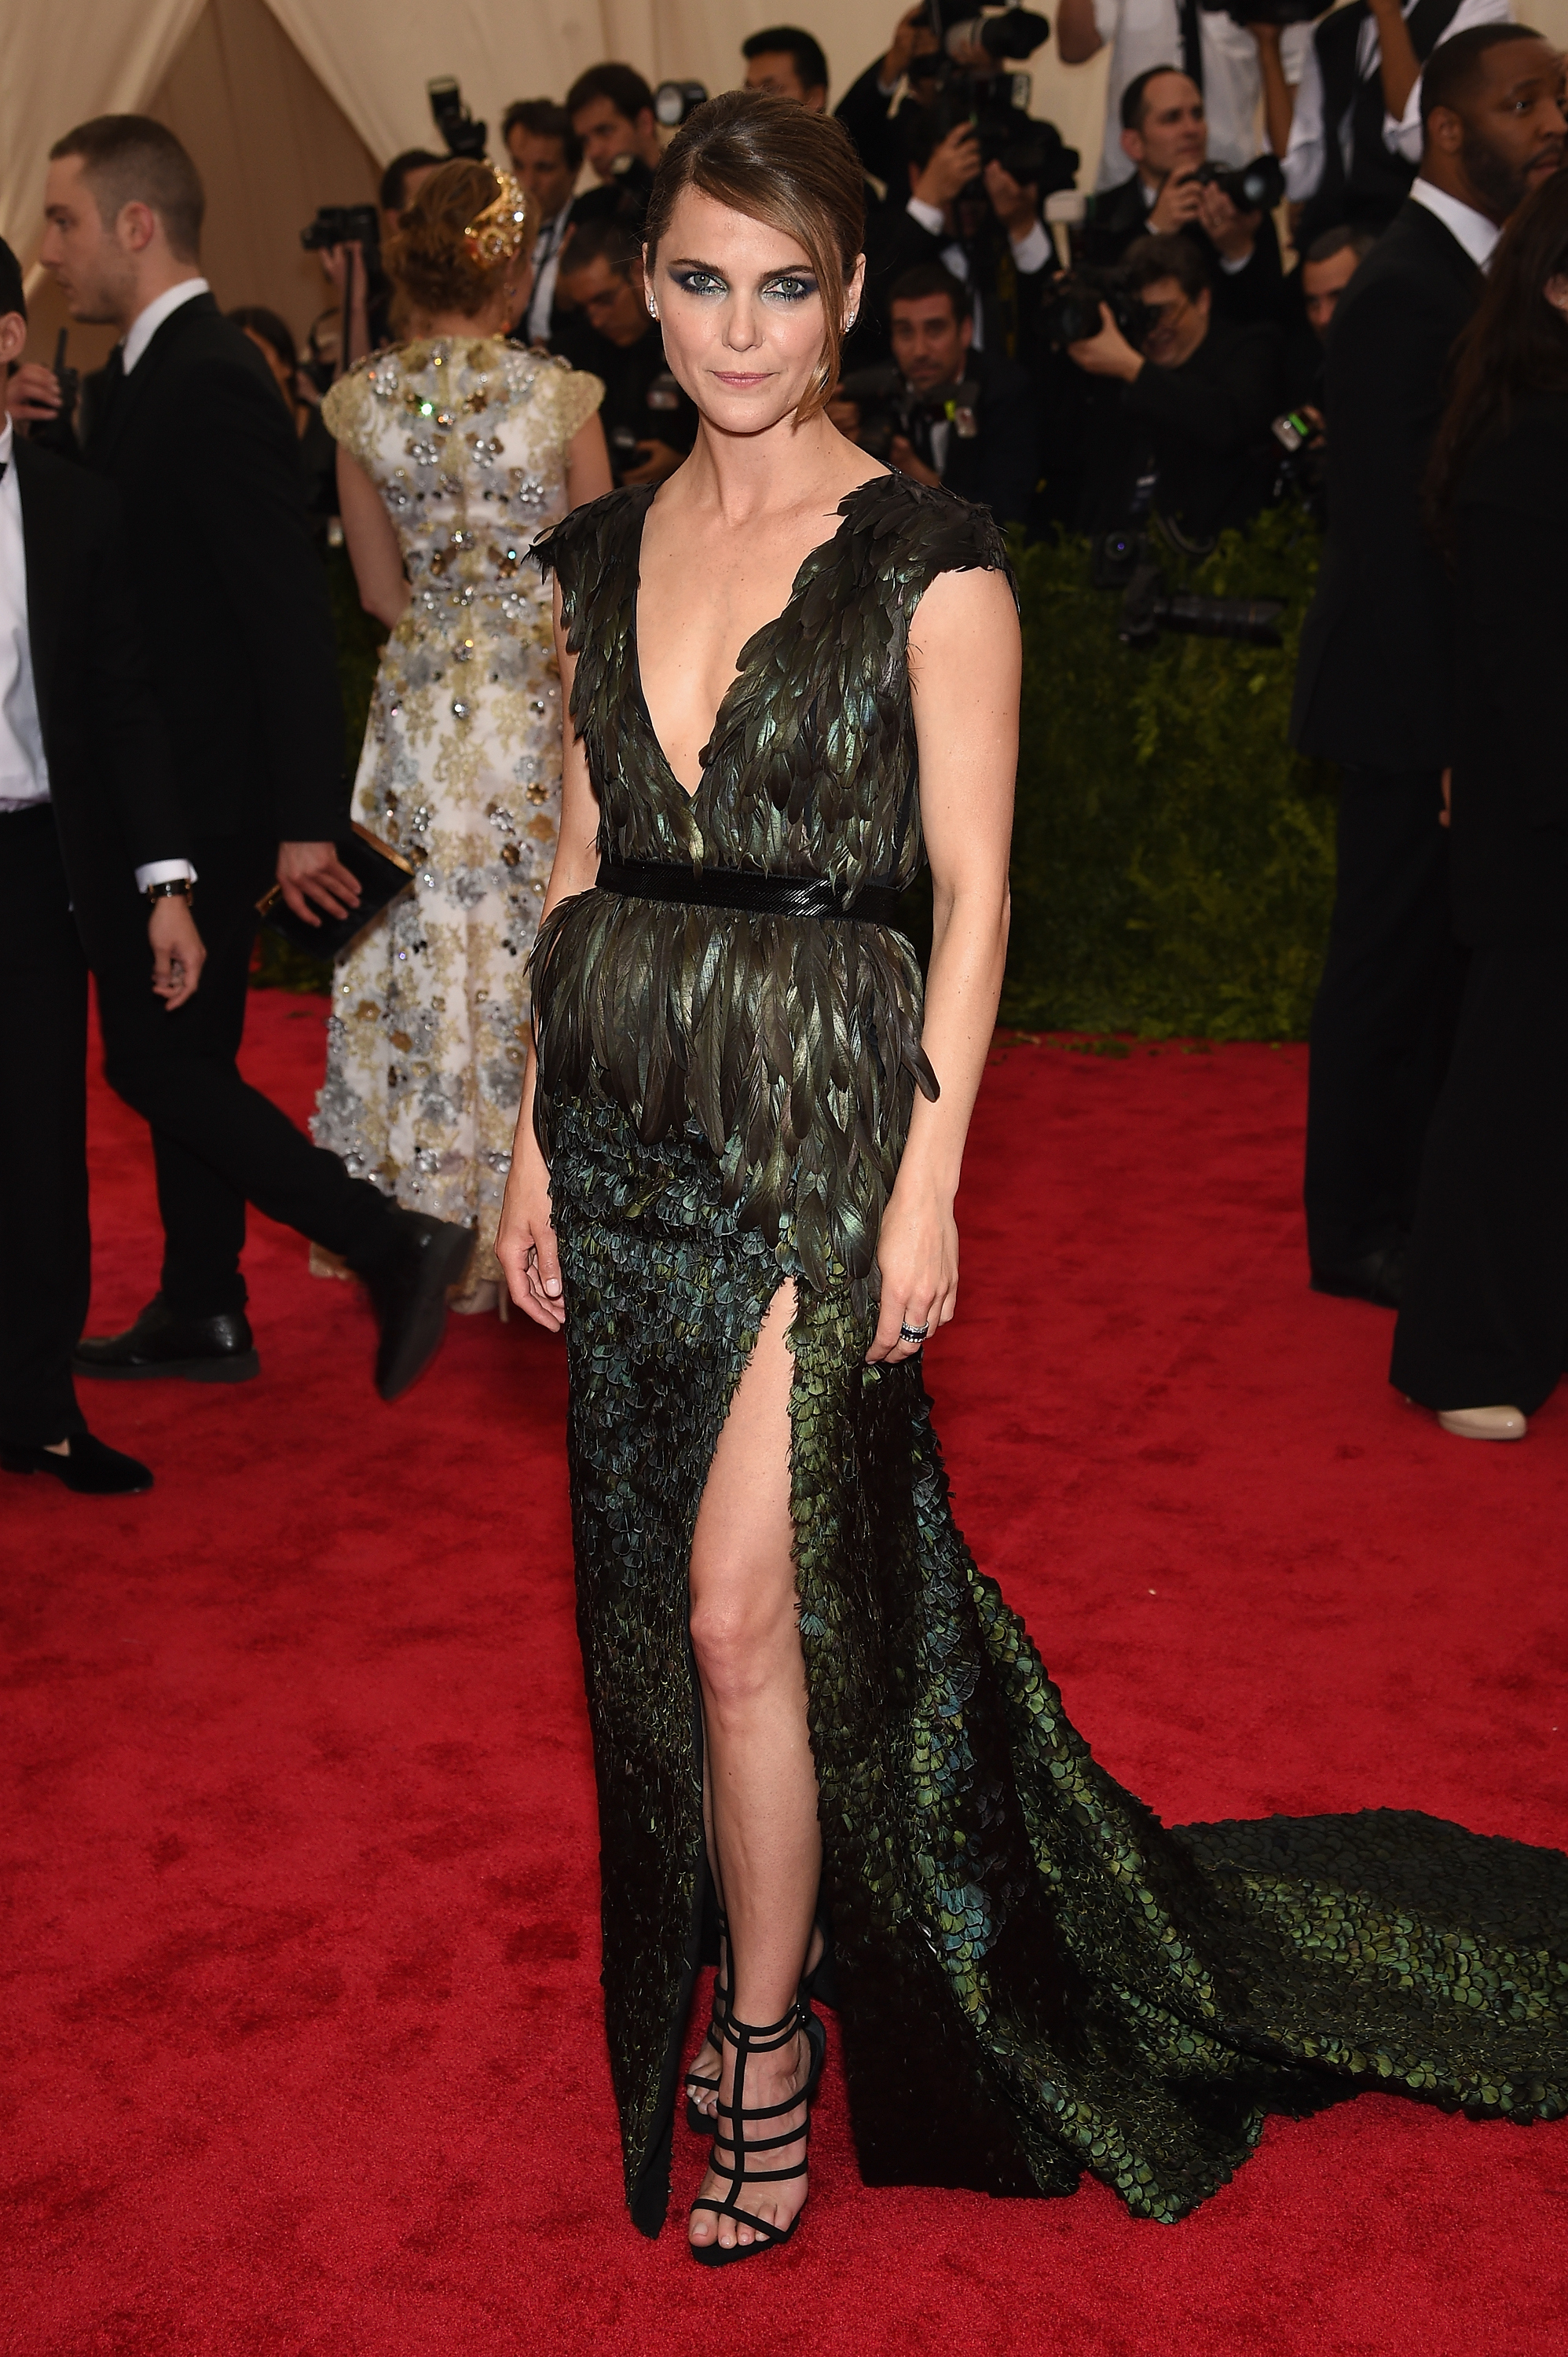 Kerri Russell in Altuzarra - I love this.